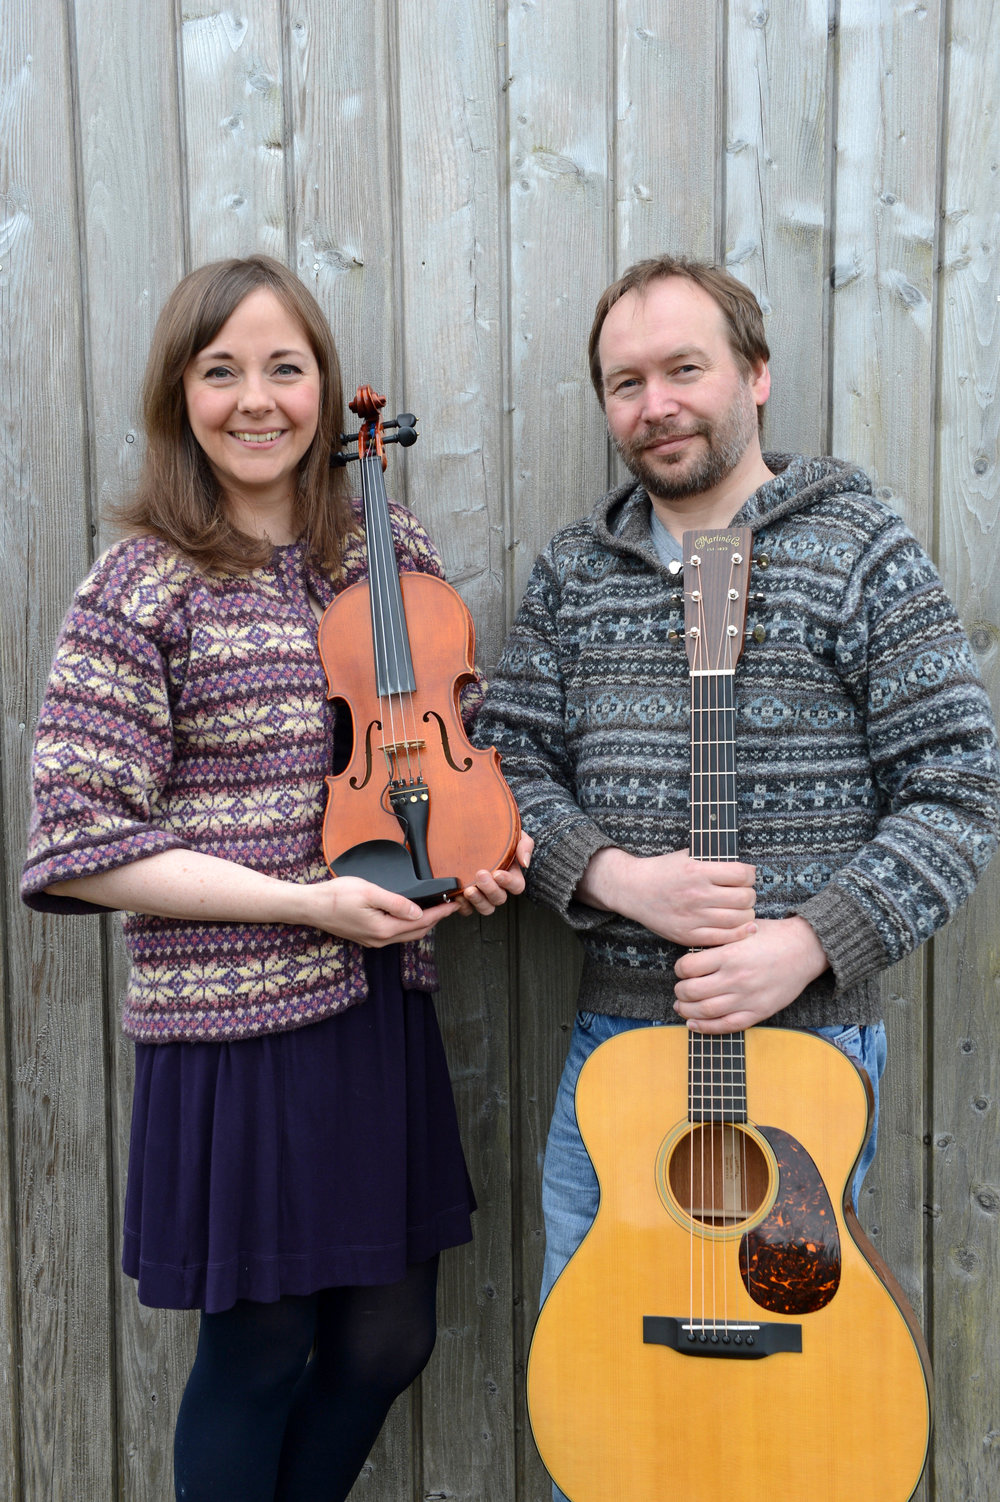 Claire White and Robbie Leask fiddle guitar.jpg